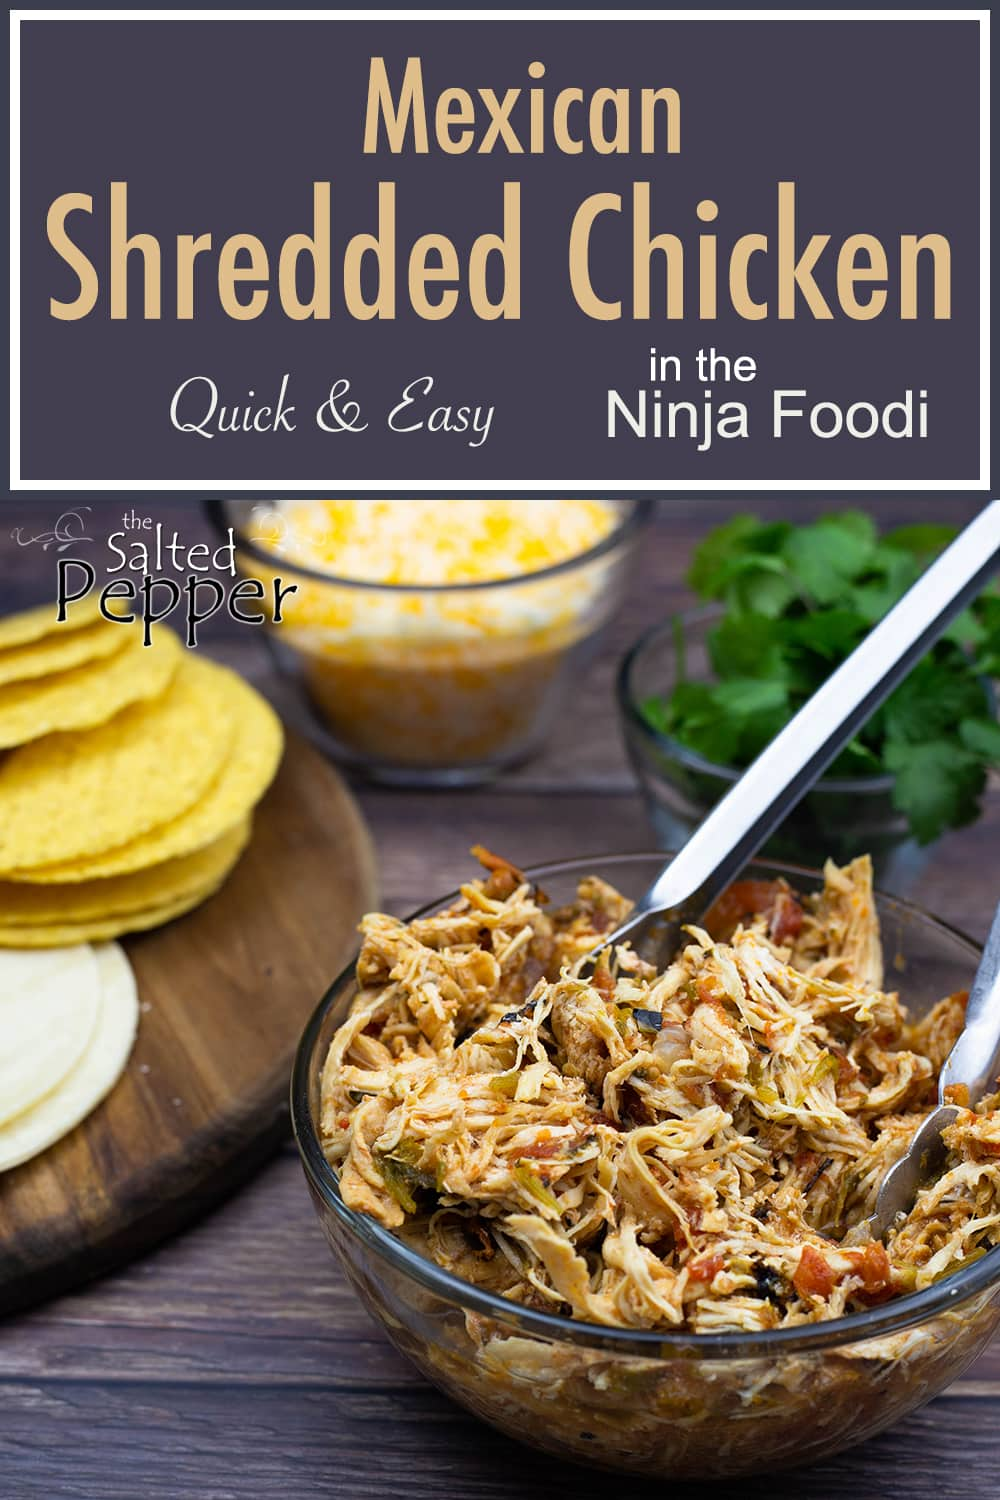 Deliciously Simple Mexican Shredded Chicken Made Right In The Ninja Foodi Or Electric Pressur Mexican Shredded Chicken Shredded Chicken Mexican Chicken Recipes